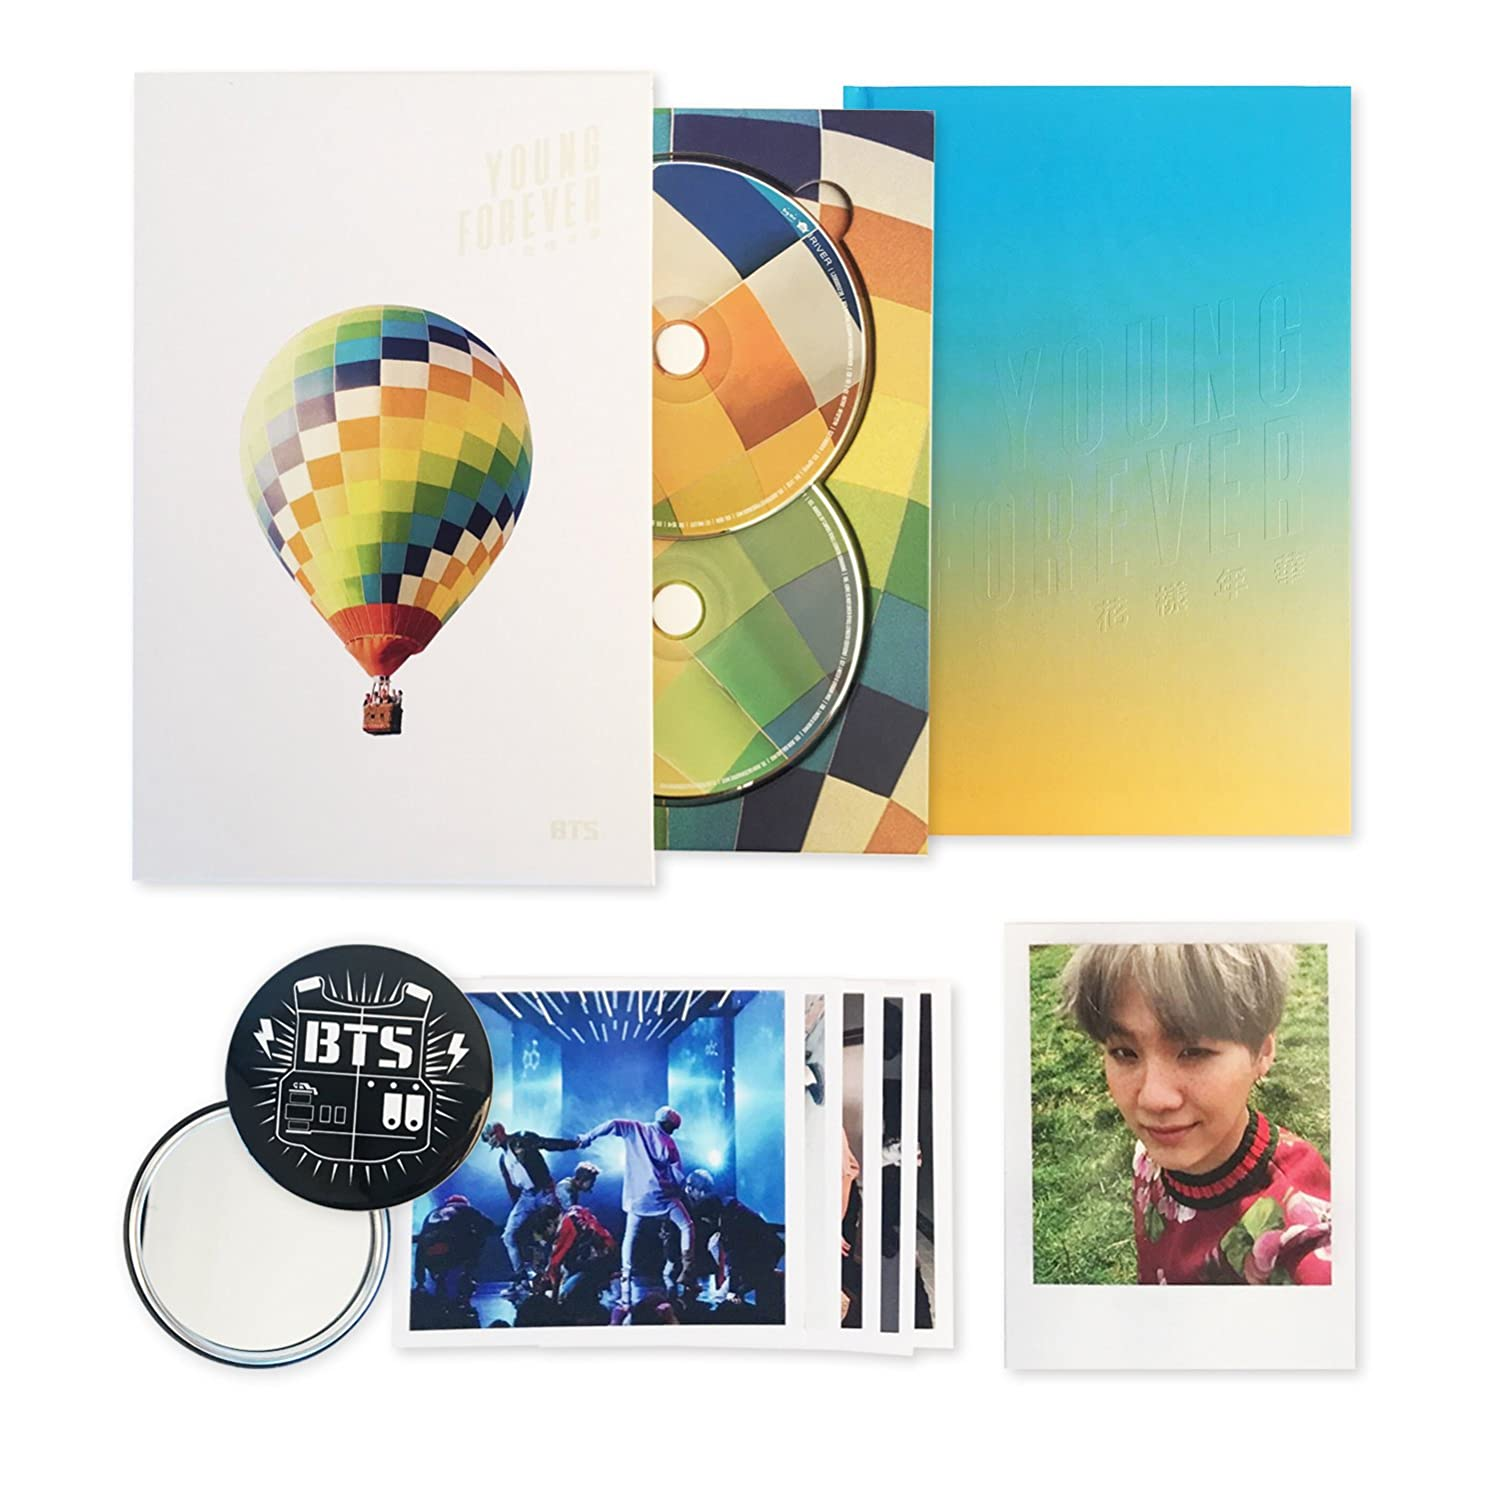 YOUNG FOREVER [ DAY Ver. ] - BTS Special Album CD + Photobook + Polaroid Card + Folded Poster + FREE GIFT